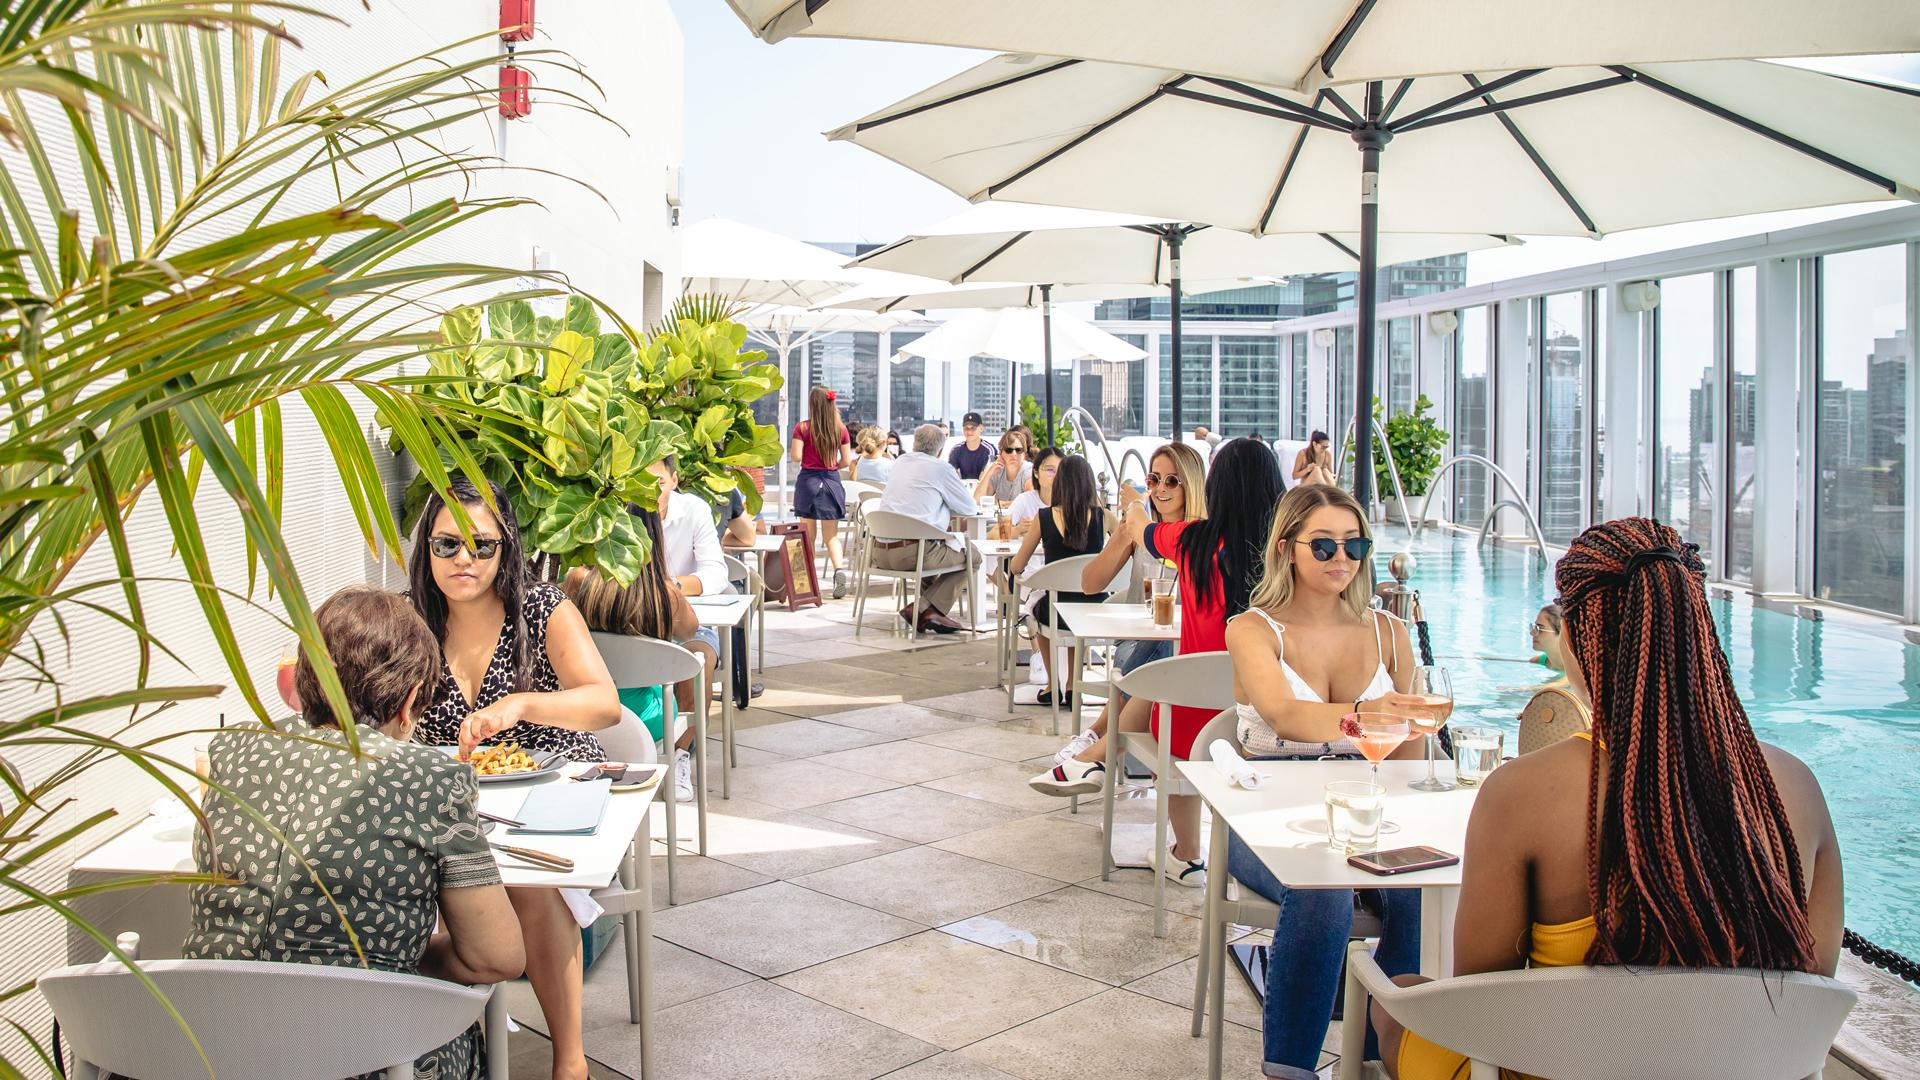 The best rooftop patios in Toronto | People dine on the rooftop patio at KOST